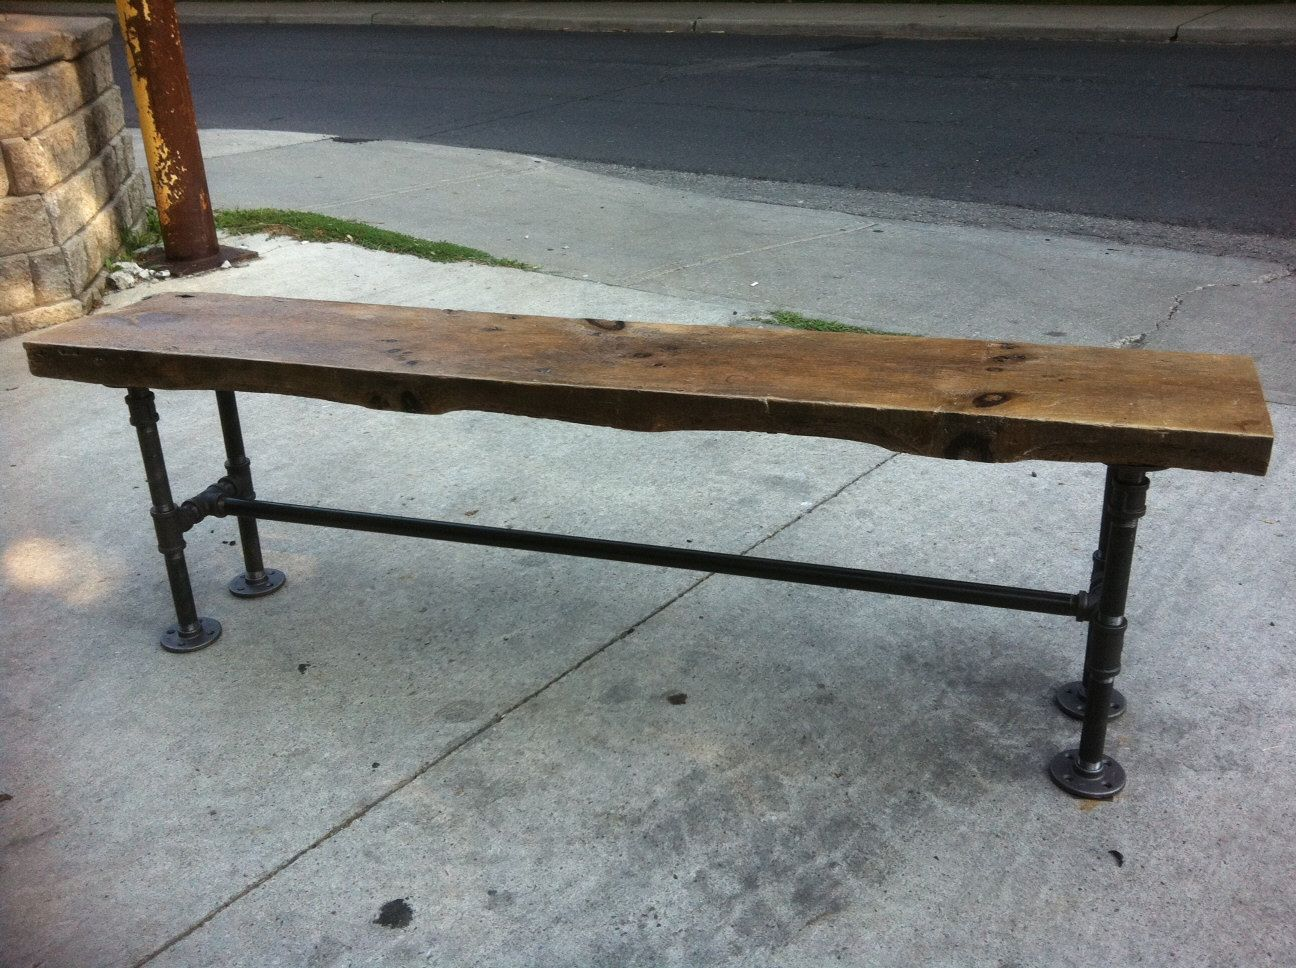 Reclaimed Wood Bench With Pipe Legs By Leventhalvermaat On Etsy Furniture Pinterest